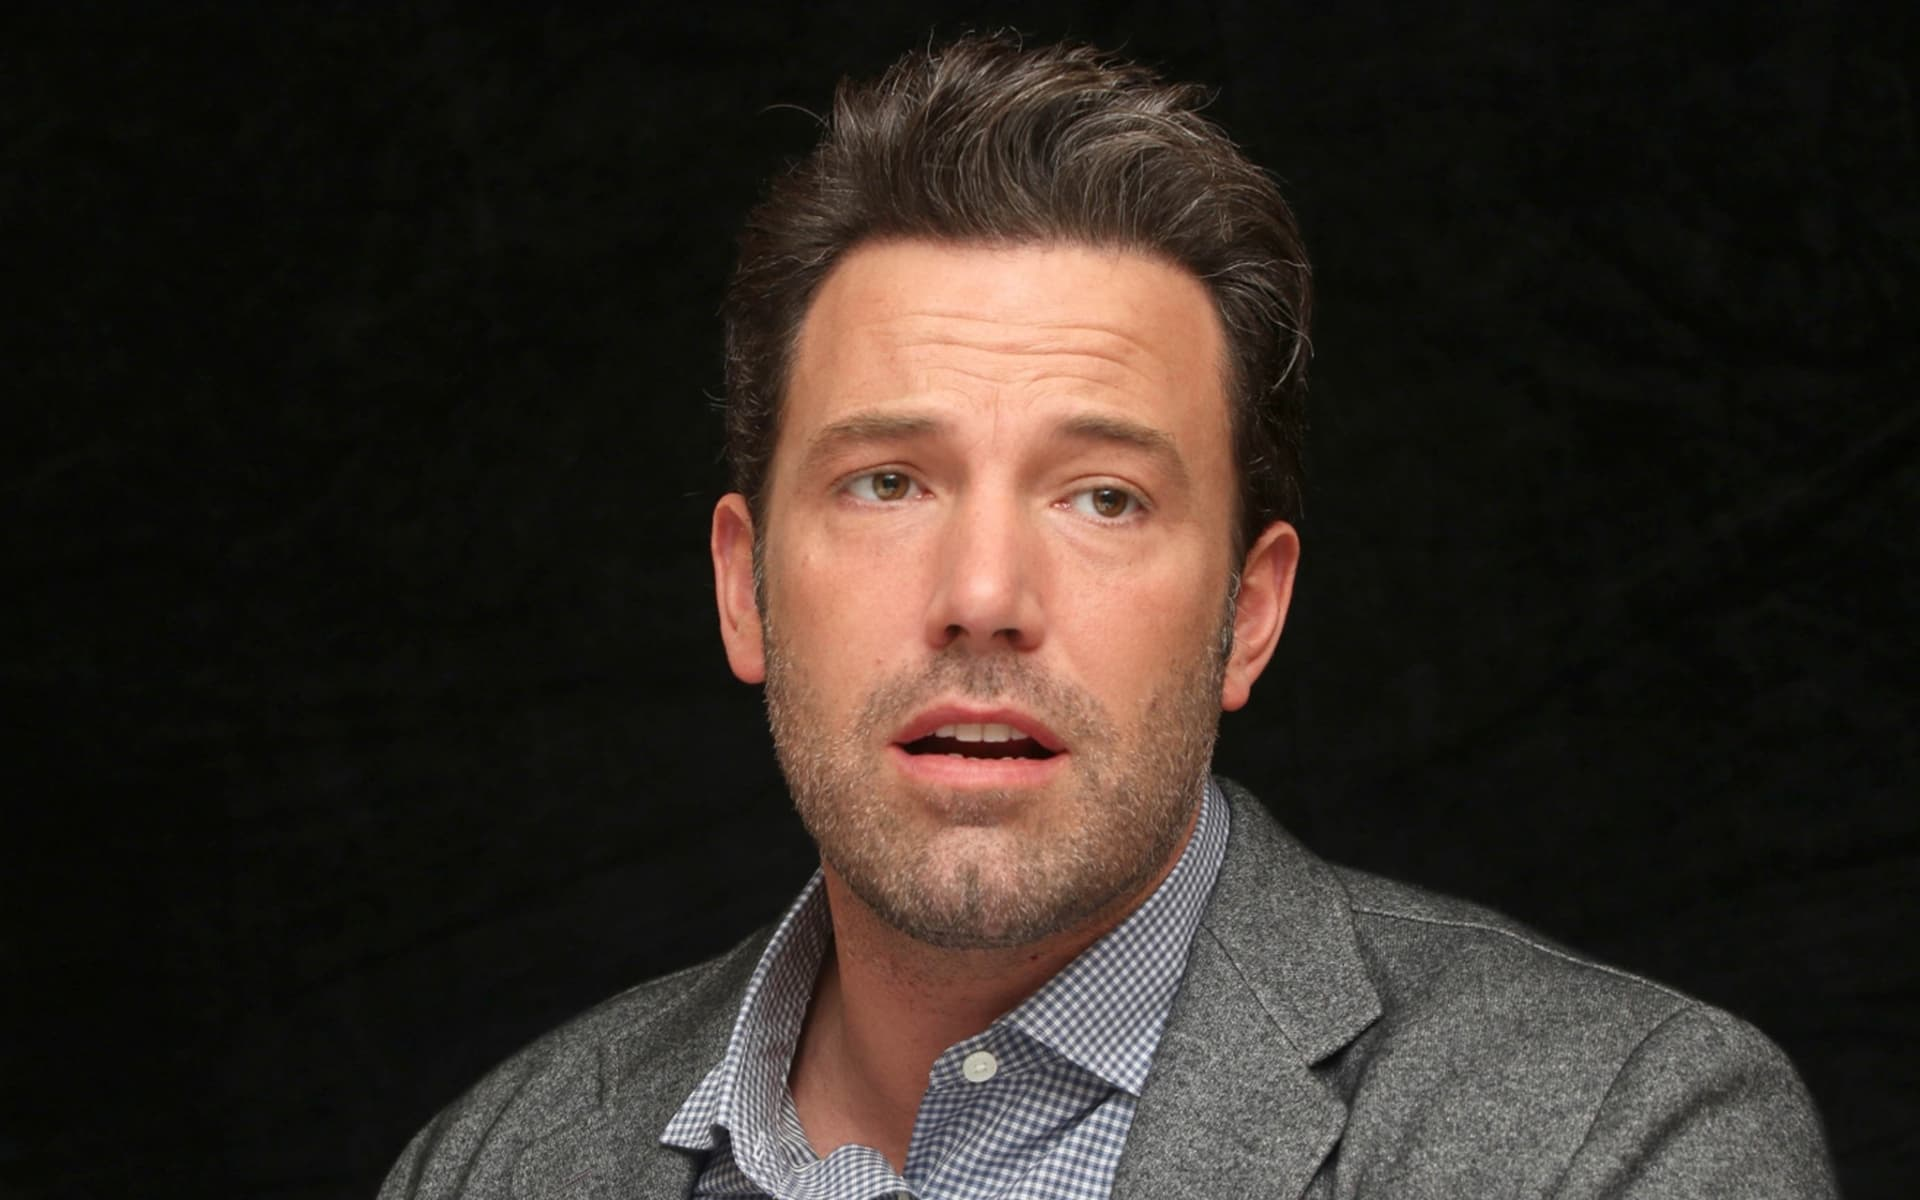 wallpapers Ben Affleck black background new 2016 picture